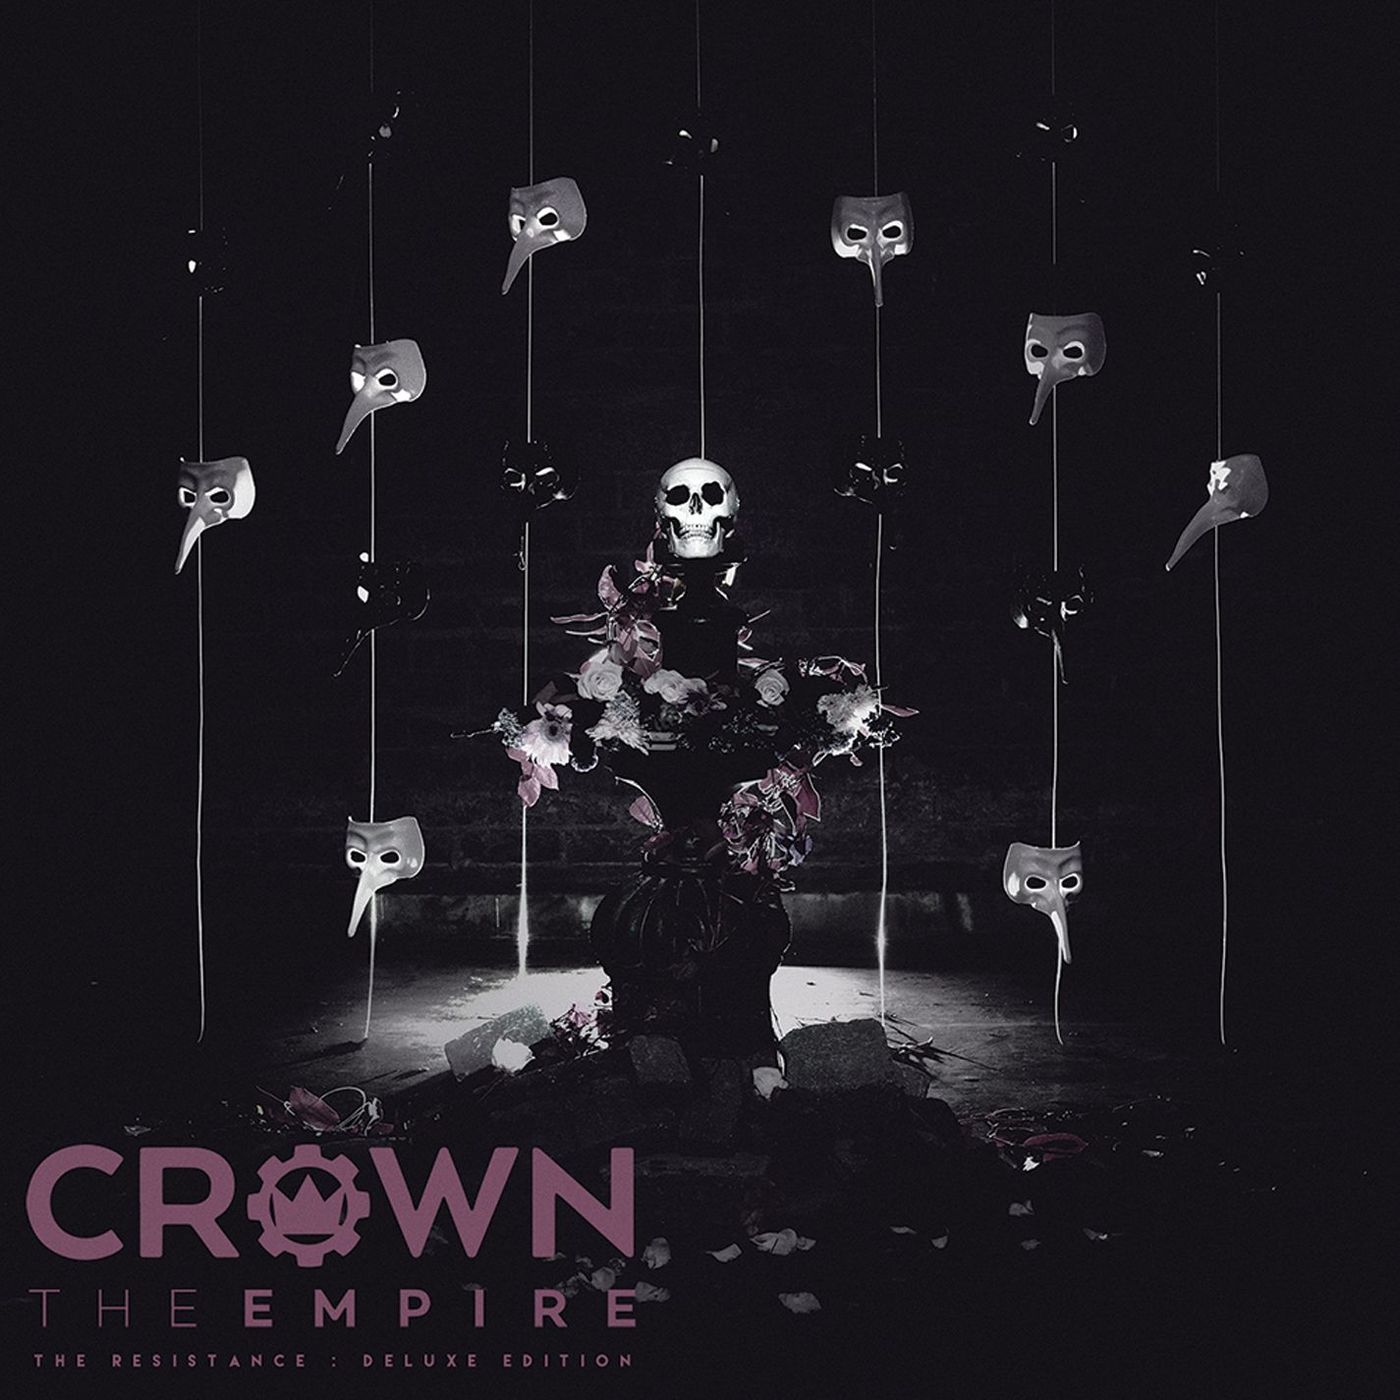 Crown The Empire - The Resistance (Deluxe Edition) (2015)